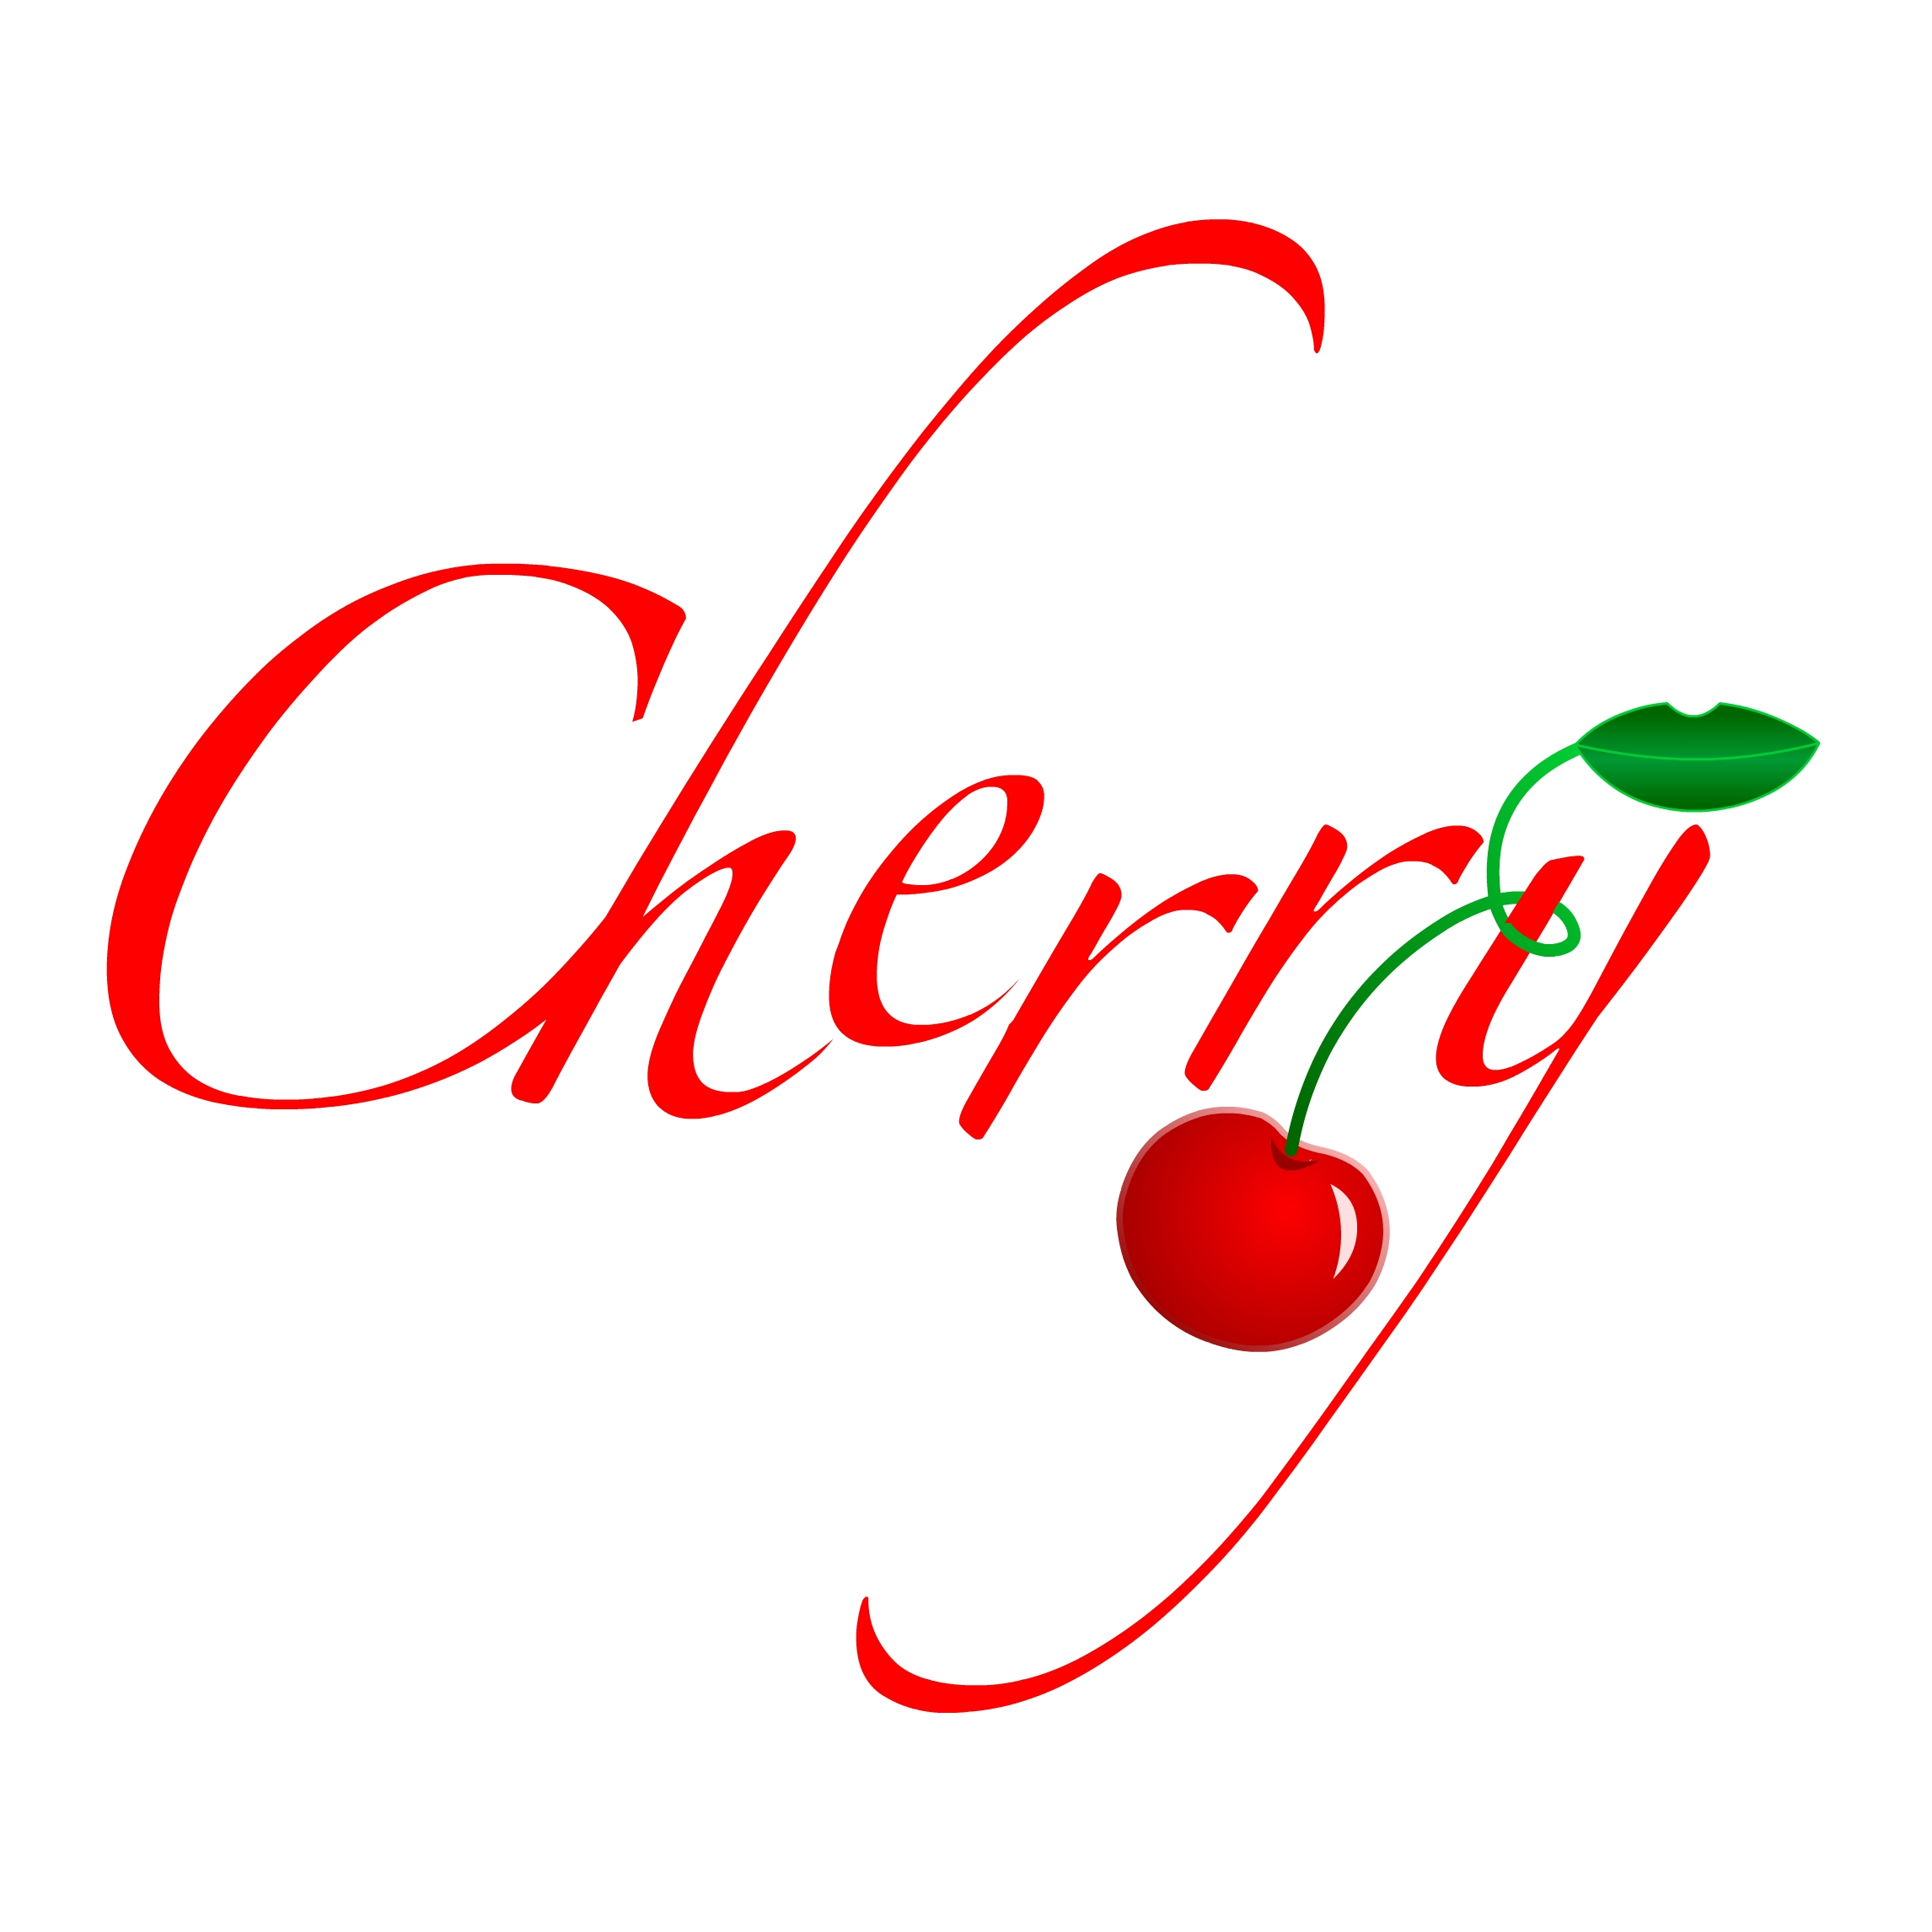 MY CHERRY GIRL